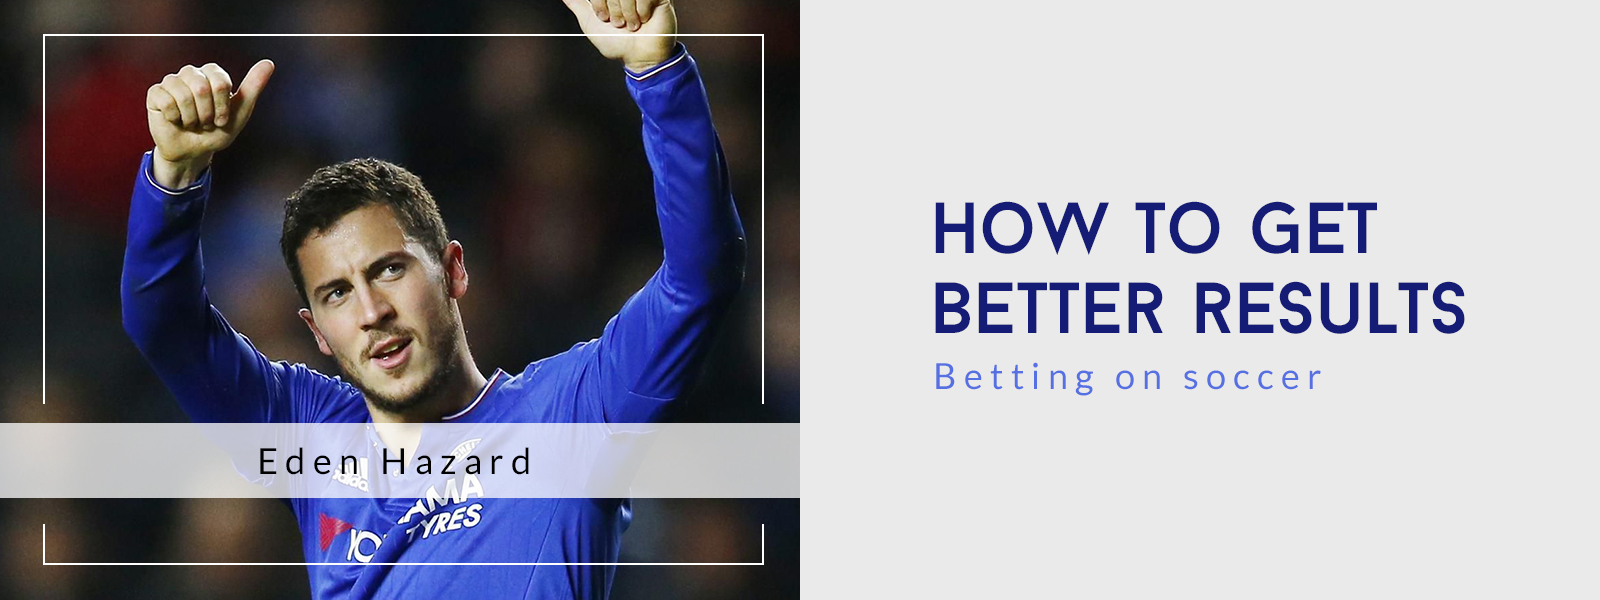 How to get better results betting on soccer